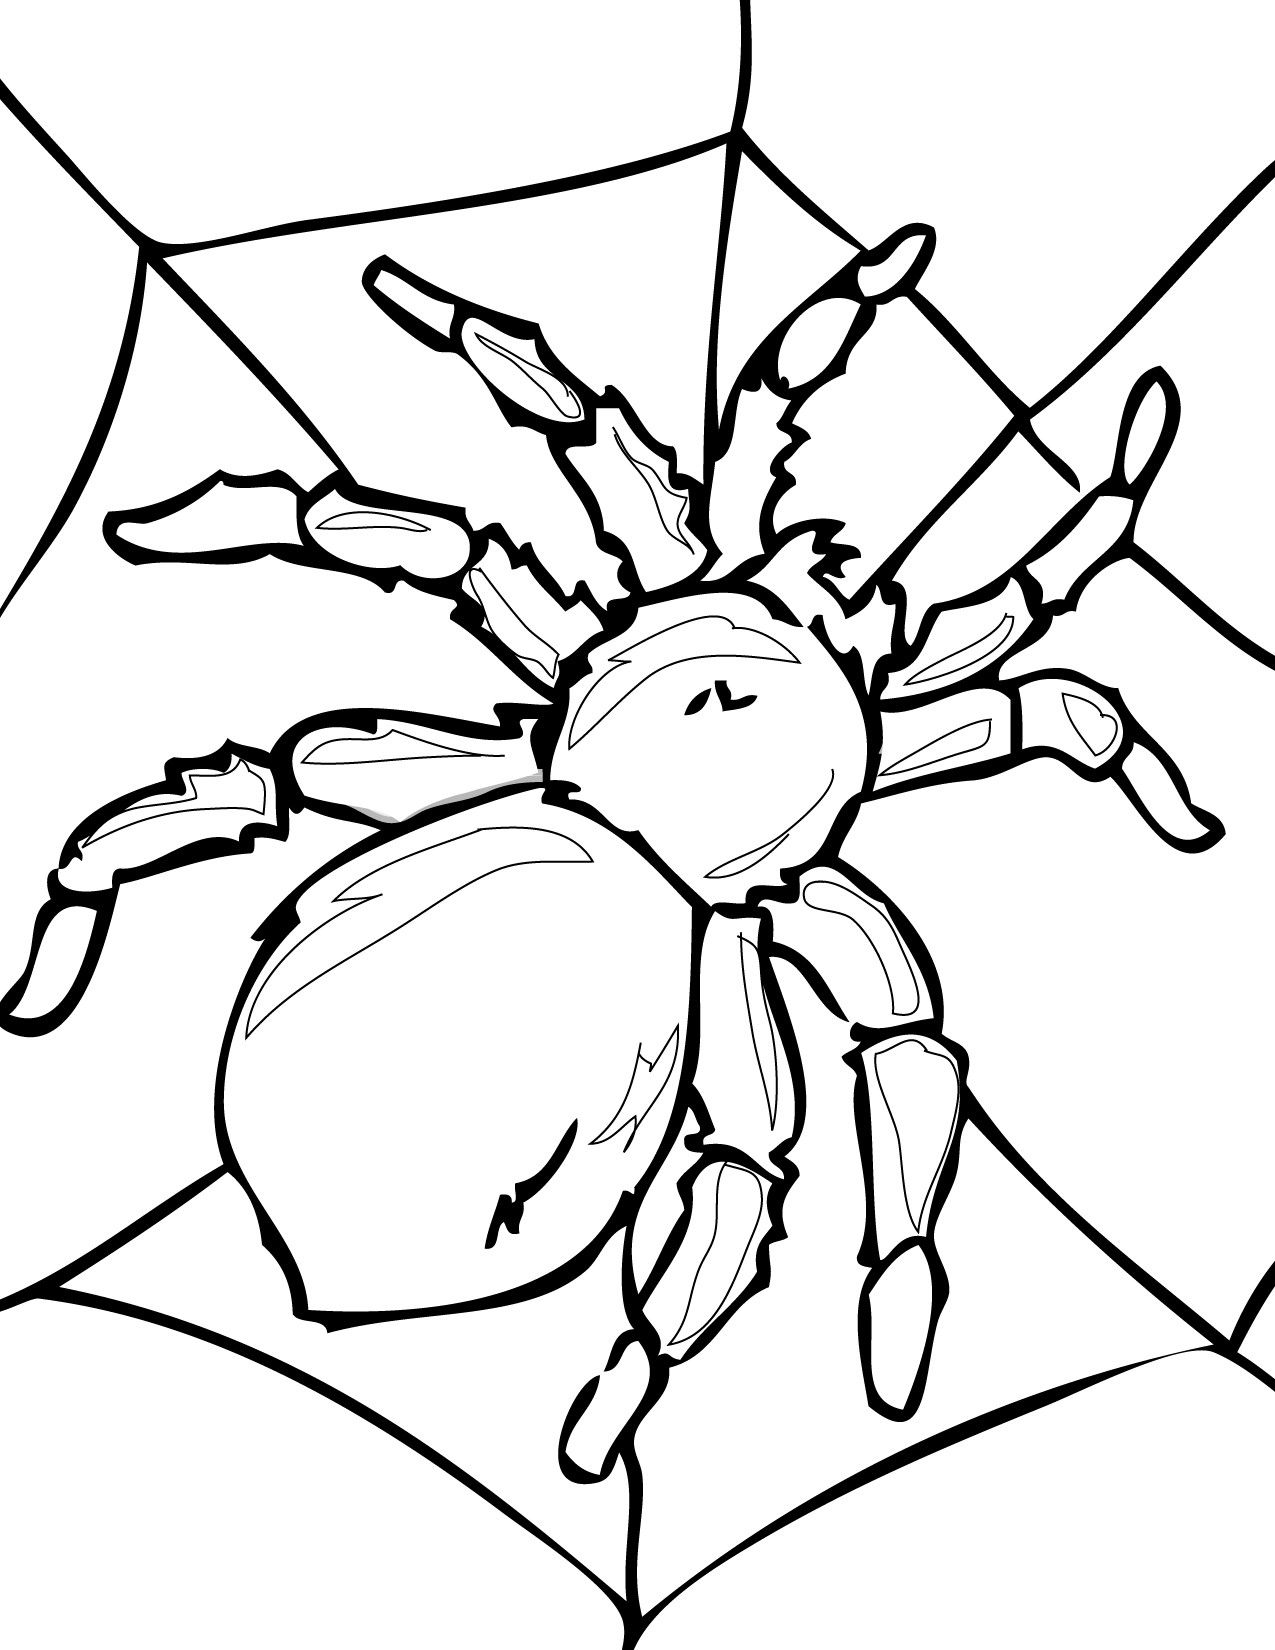 Exceptional Spider Coloring Pages For Kids